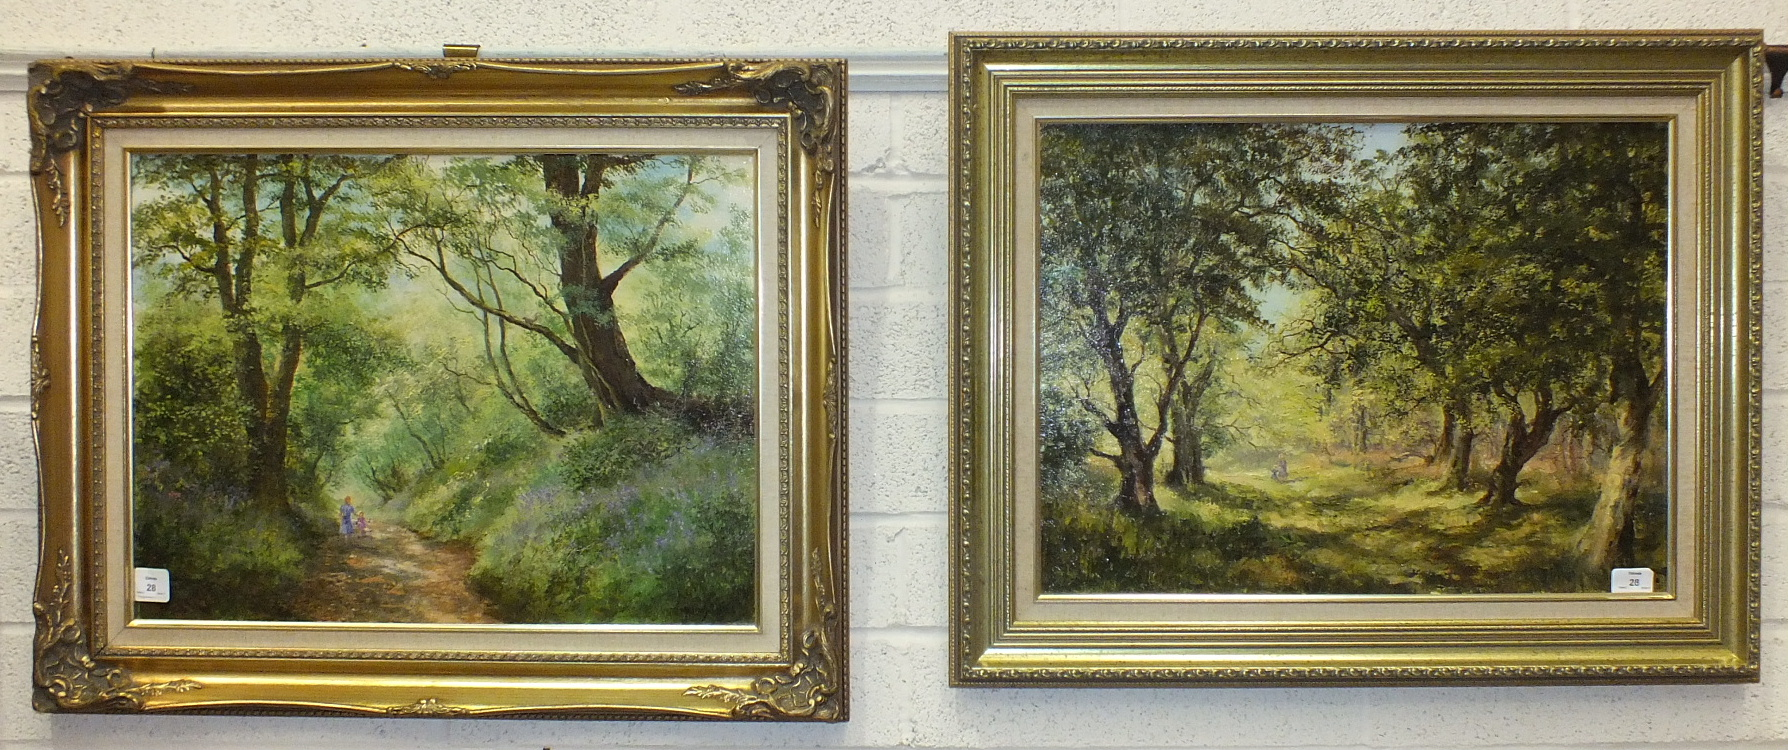 J M Wells Price, 'Sunshine & Shadows', a signed oil on canvas, 45 x 60cm, titled label verso and a